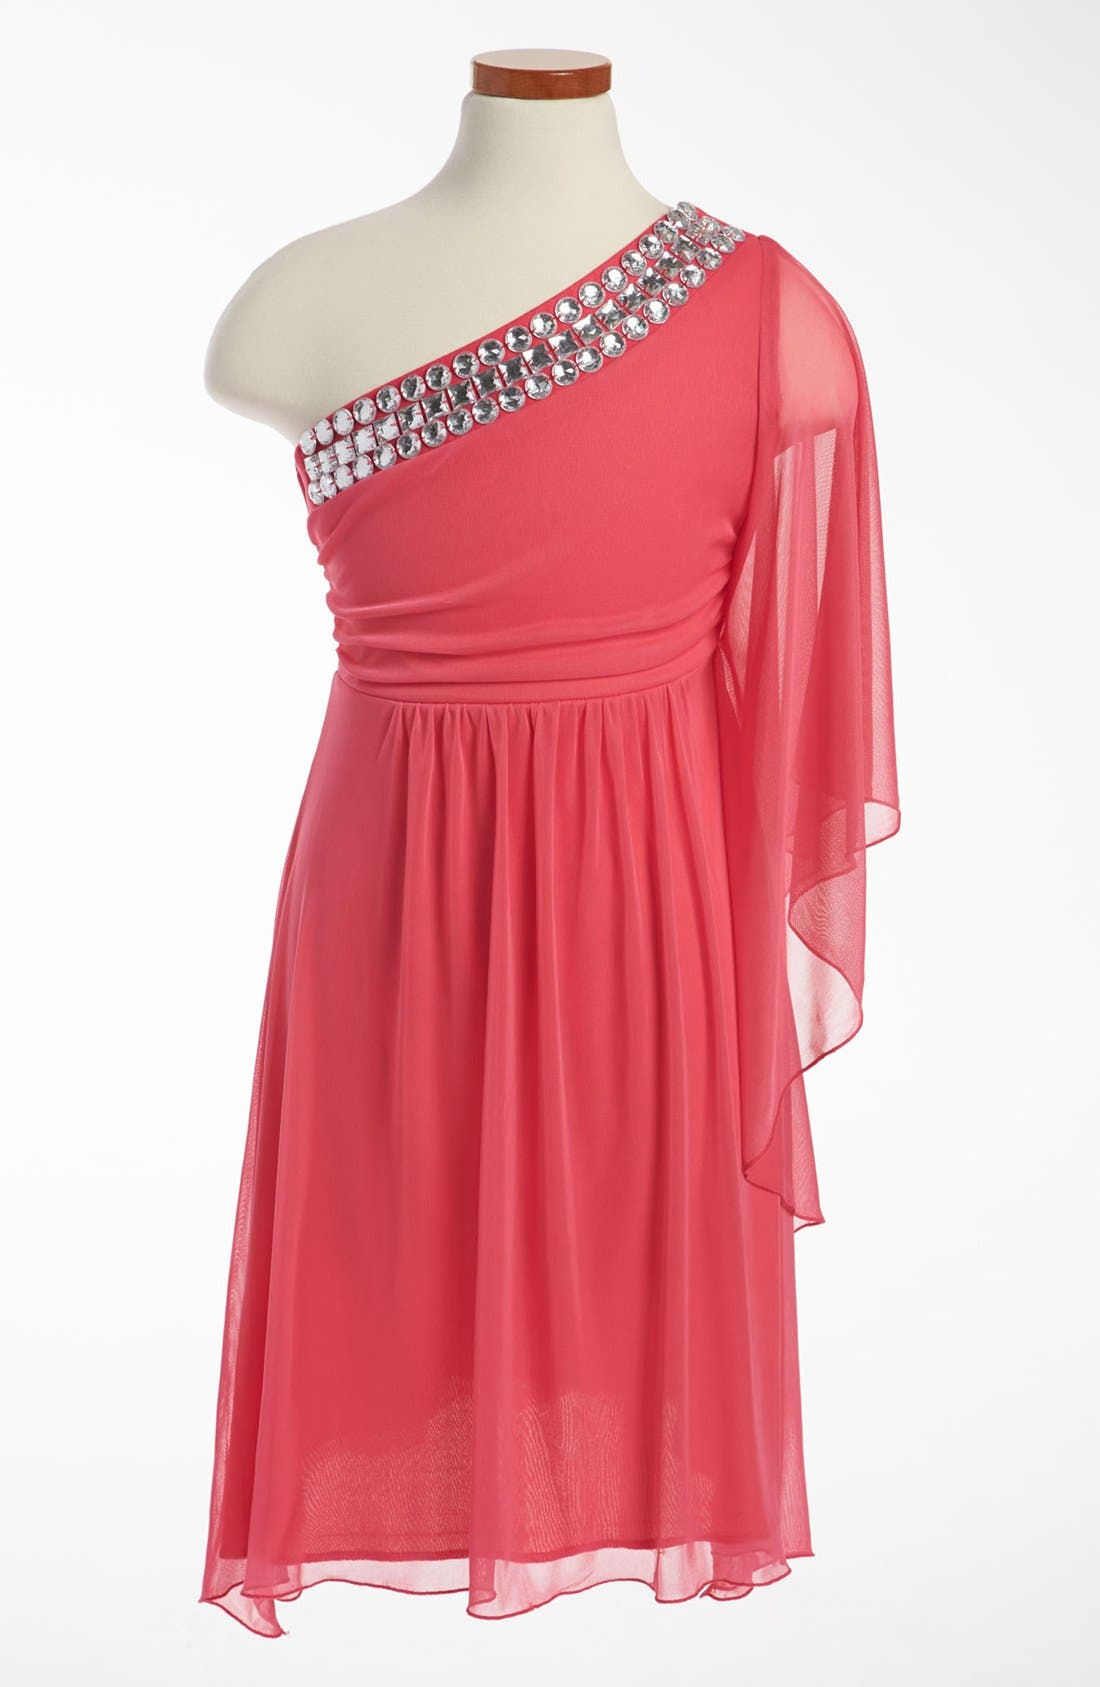 Main Image - Roxette Rhinestone Dress (Big Girls)